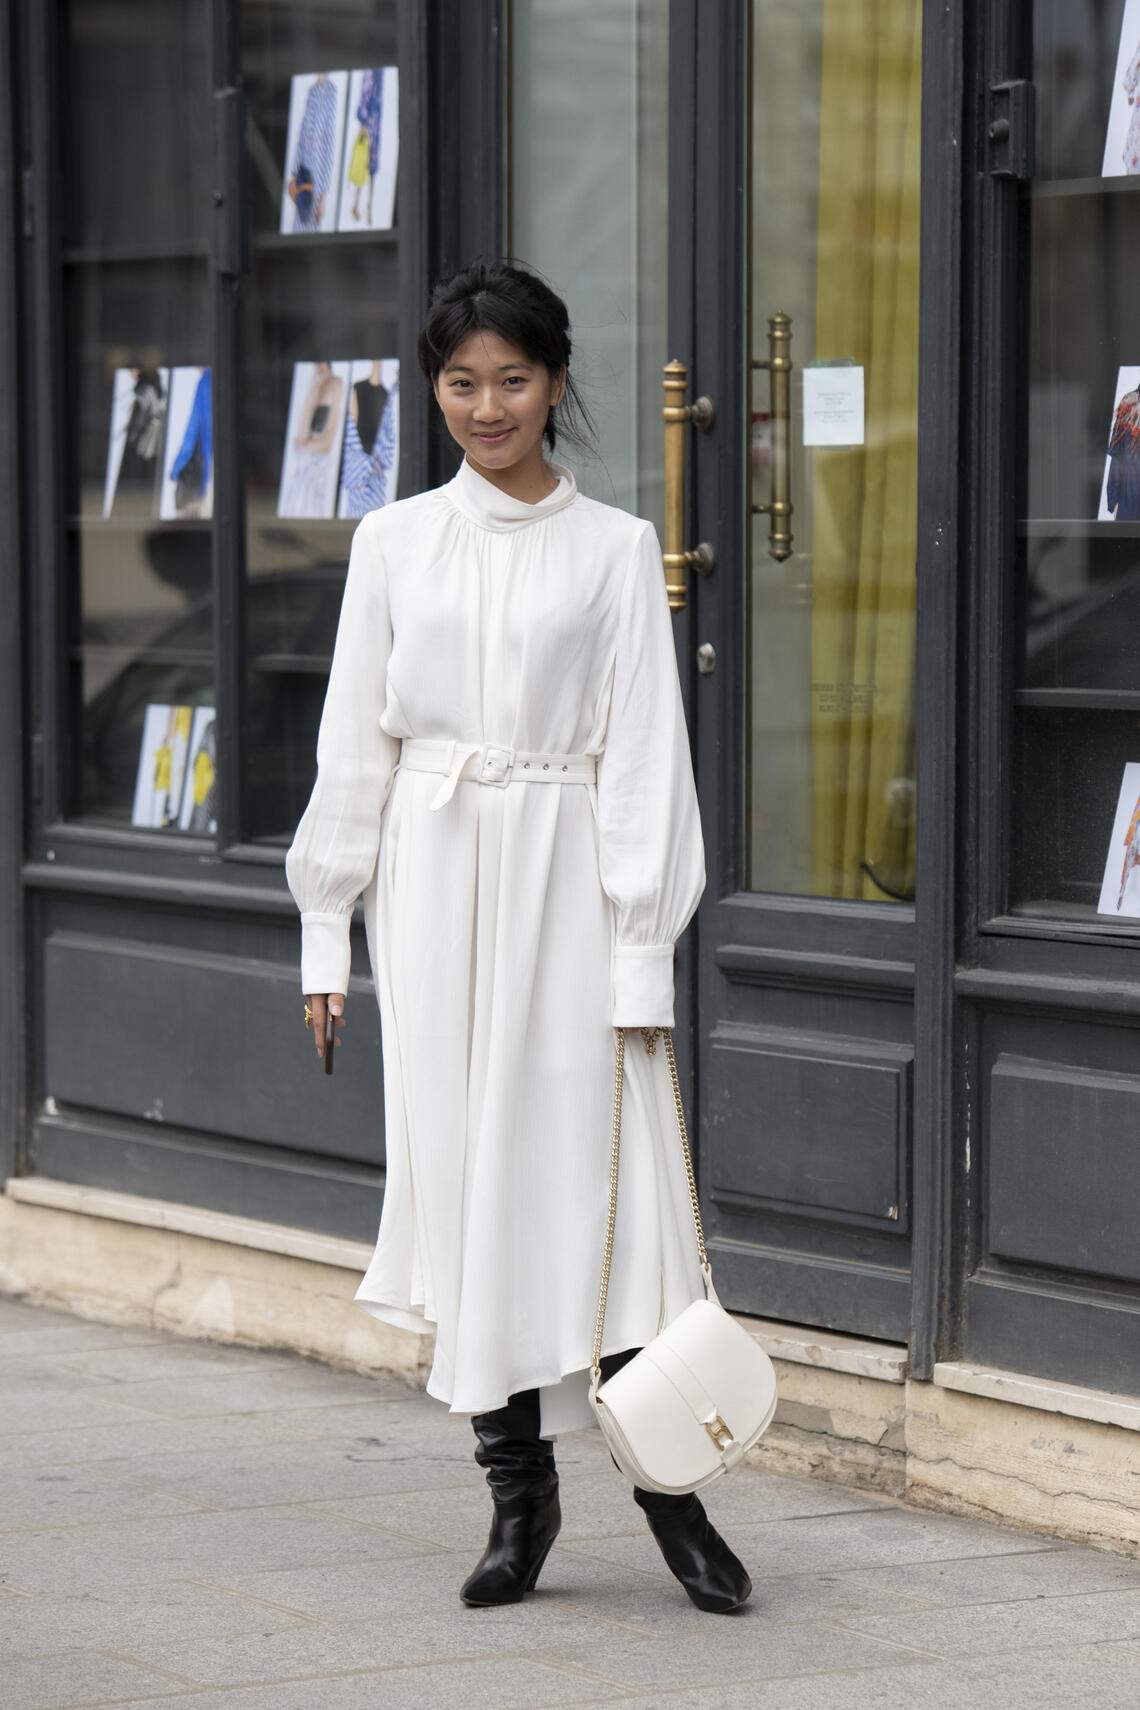 PARIS, FRANCE - MARCH 03: Digital Influencer Zaneta Cheng wears a Rachel Comey dress, Isabel Marant boots and an APC bag on March 03, 2019 in Paris, France. (Photo by Kirstin Sinclair/Getty Images)